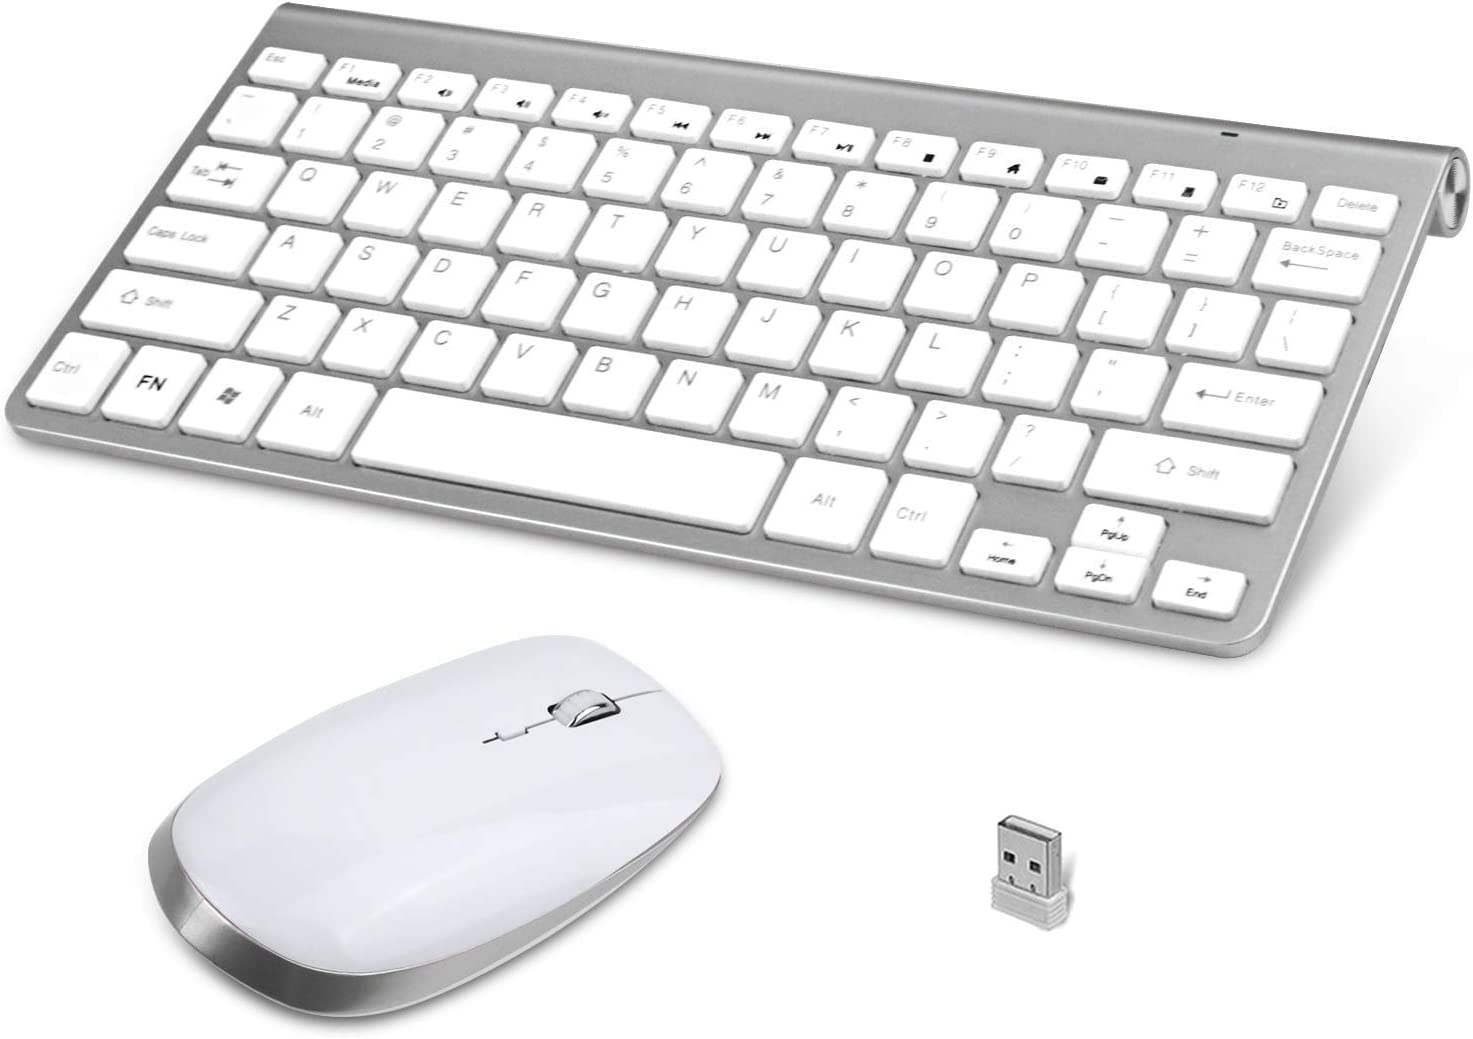 Zmsdt Ergonomic Wireless Keyboard and Mouse Compact Mini Slim Ultra-Thin Quiet Keyboard and Mouse